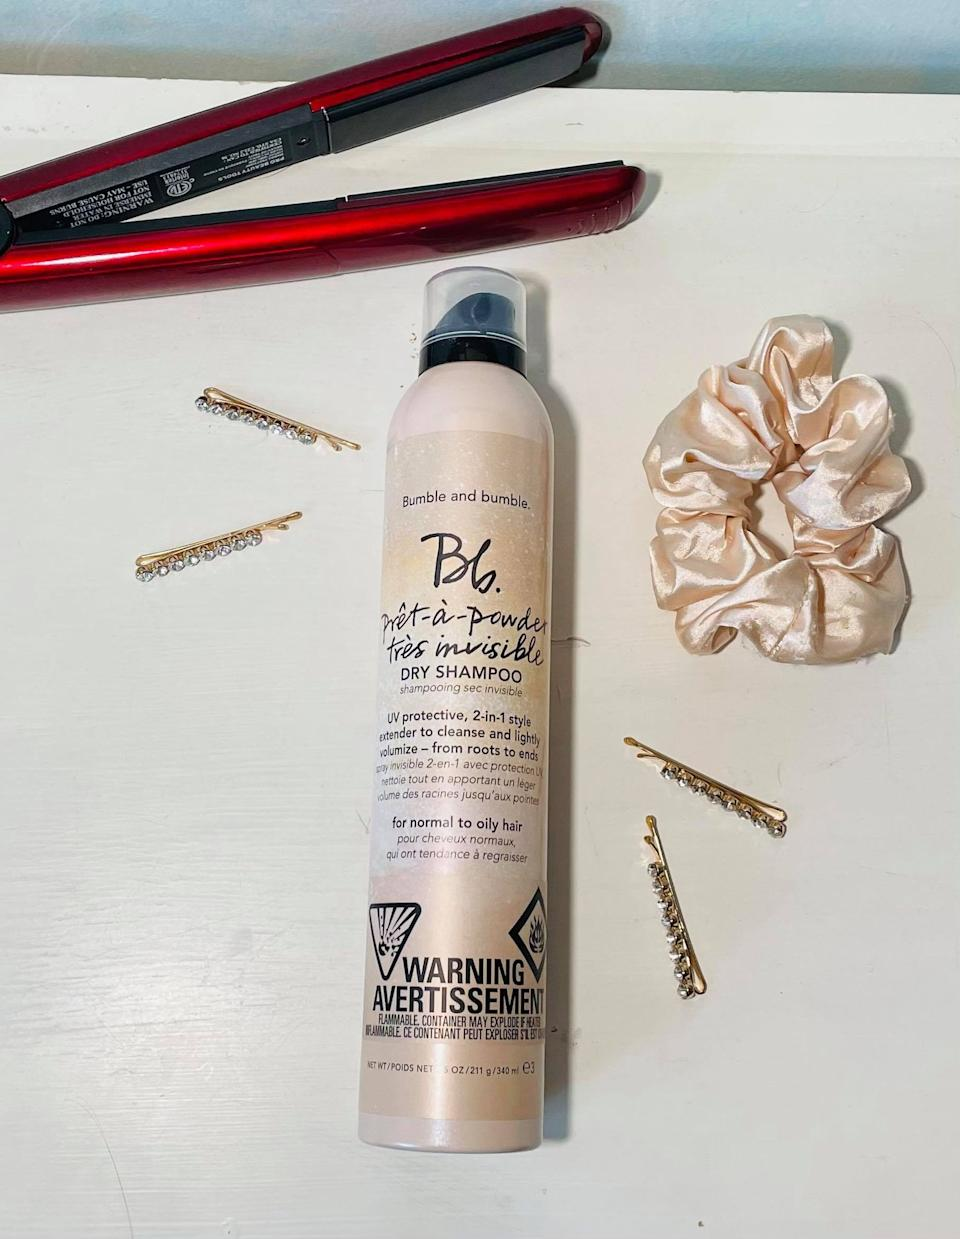 Bumble and bumble Bb. Pret-a-Powder Tres Invisible Dry Shampoo with French Pink Clay. Image via Sarah Rohoman.